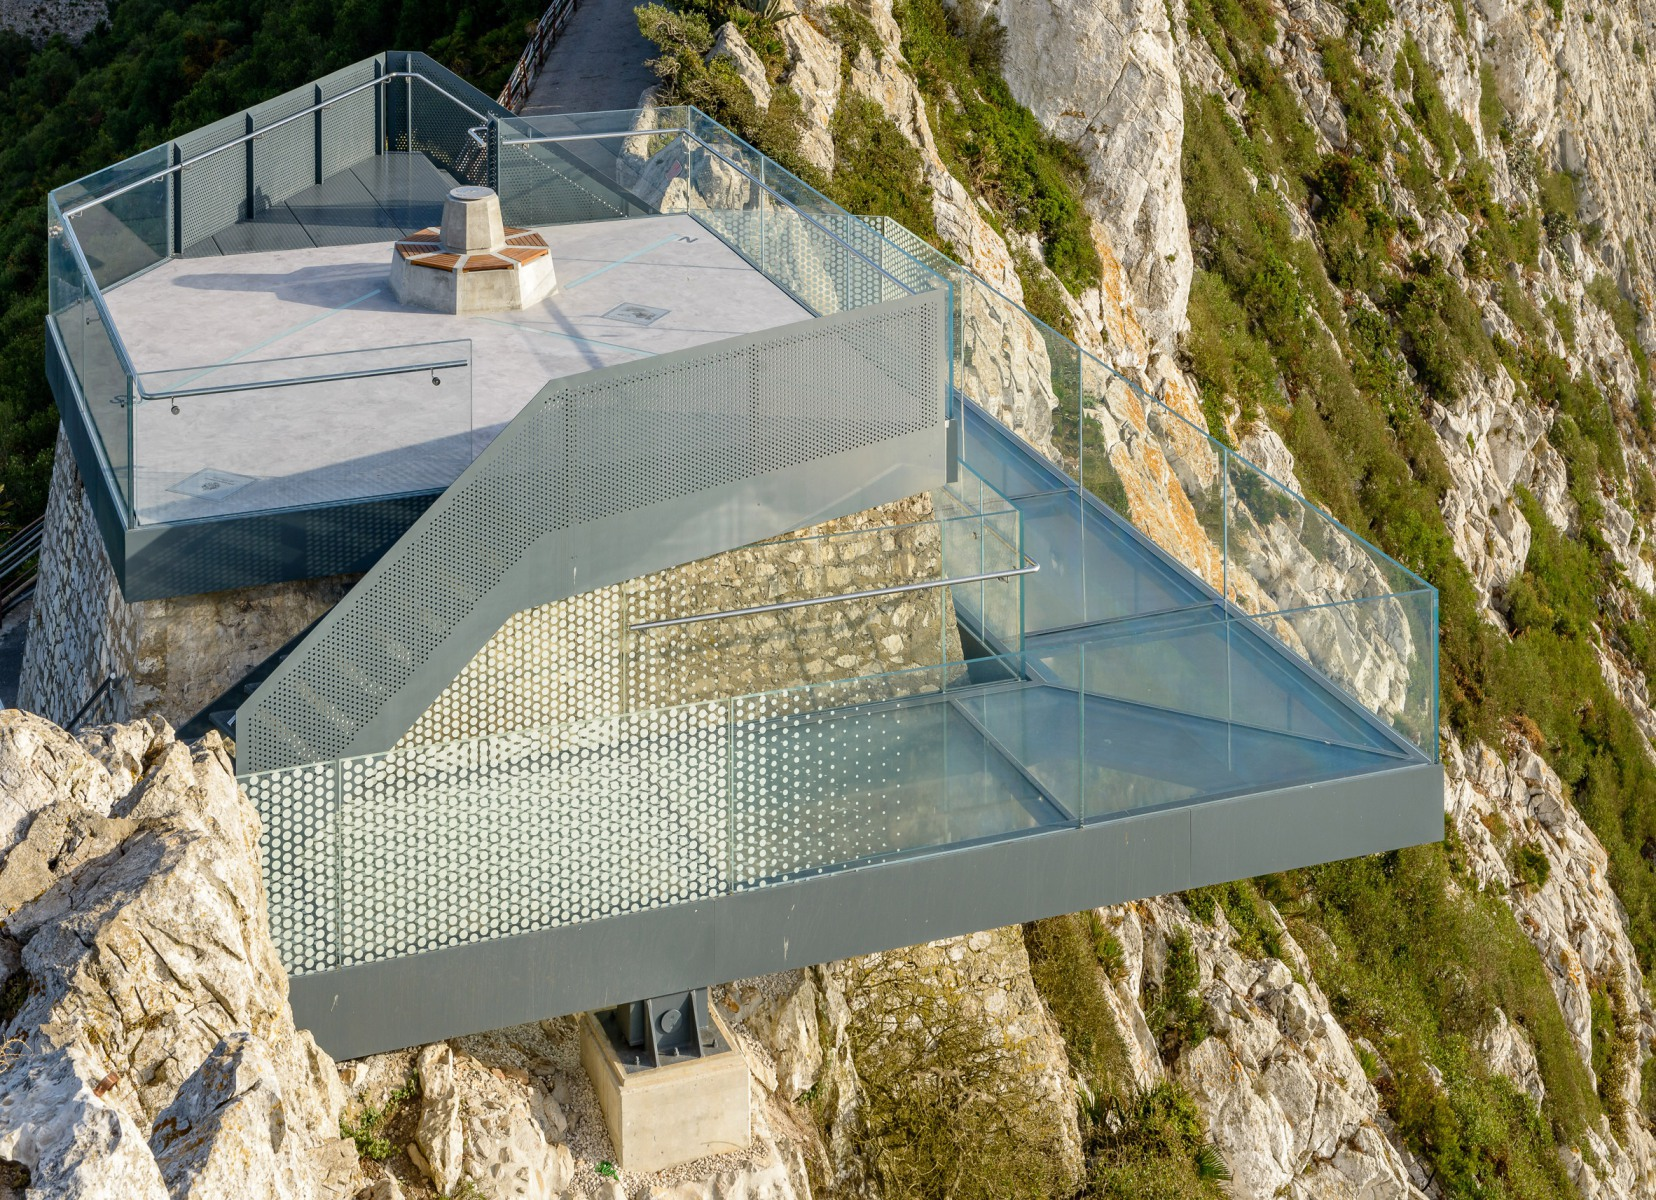 skywalk-gibraltar-7-photo-taken-for-bovis-koala-jv-by-meteogibs-photographer-stephen-ball_41367548320_o